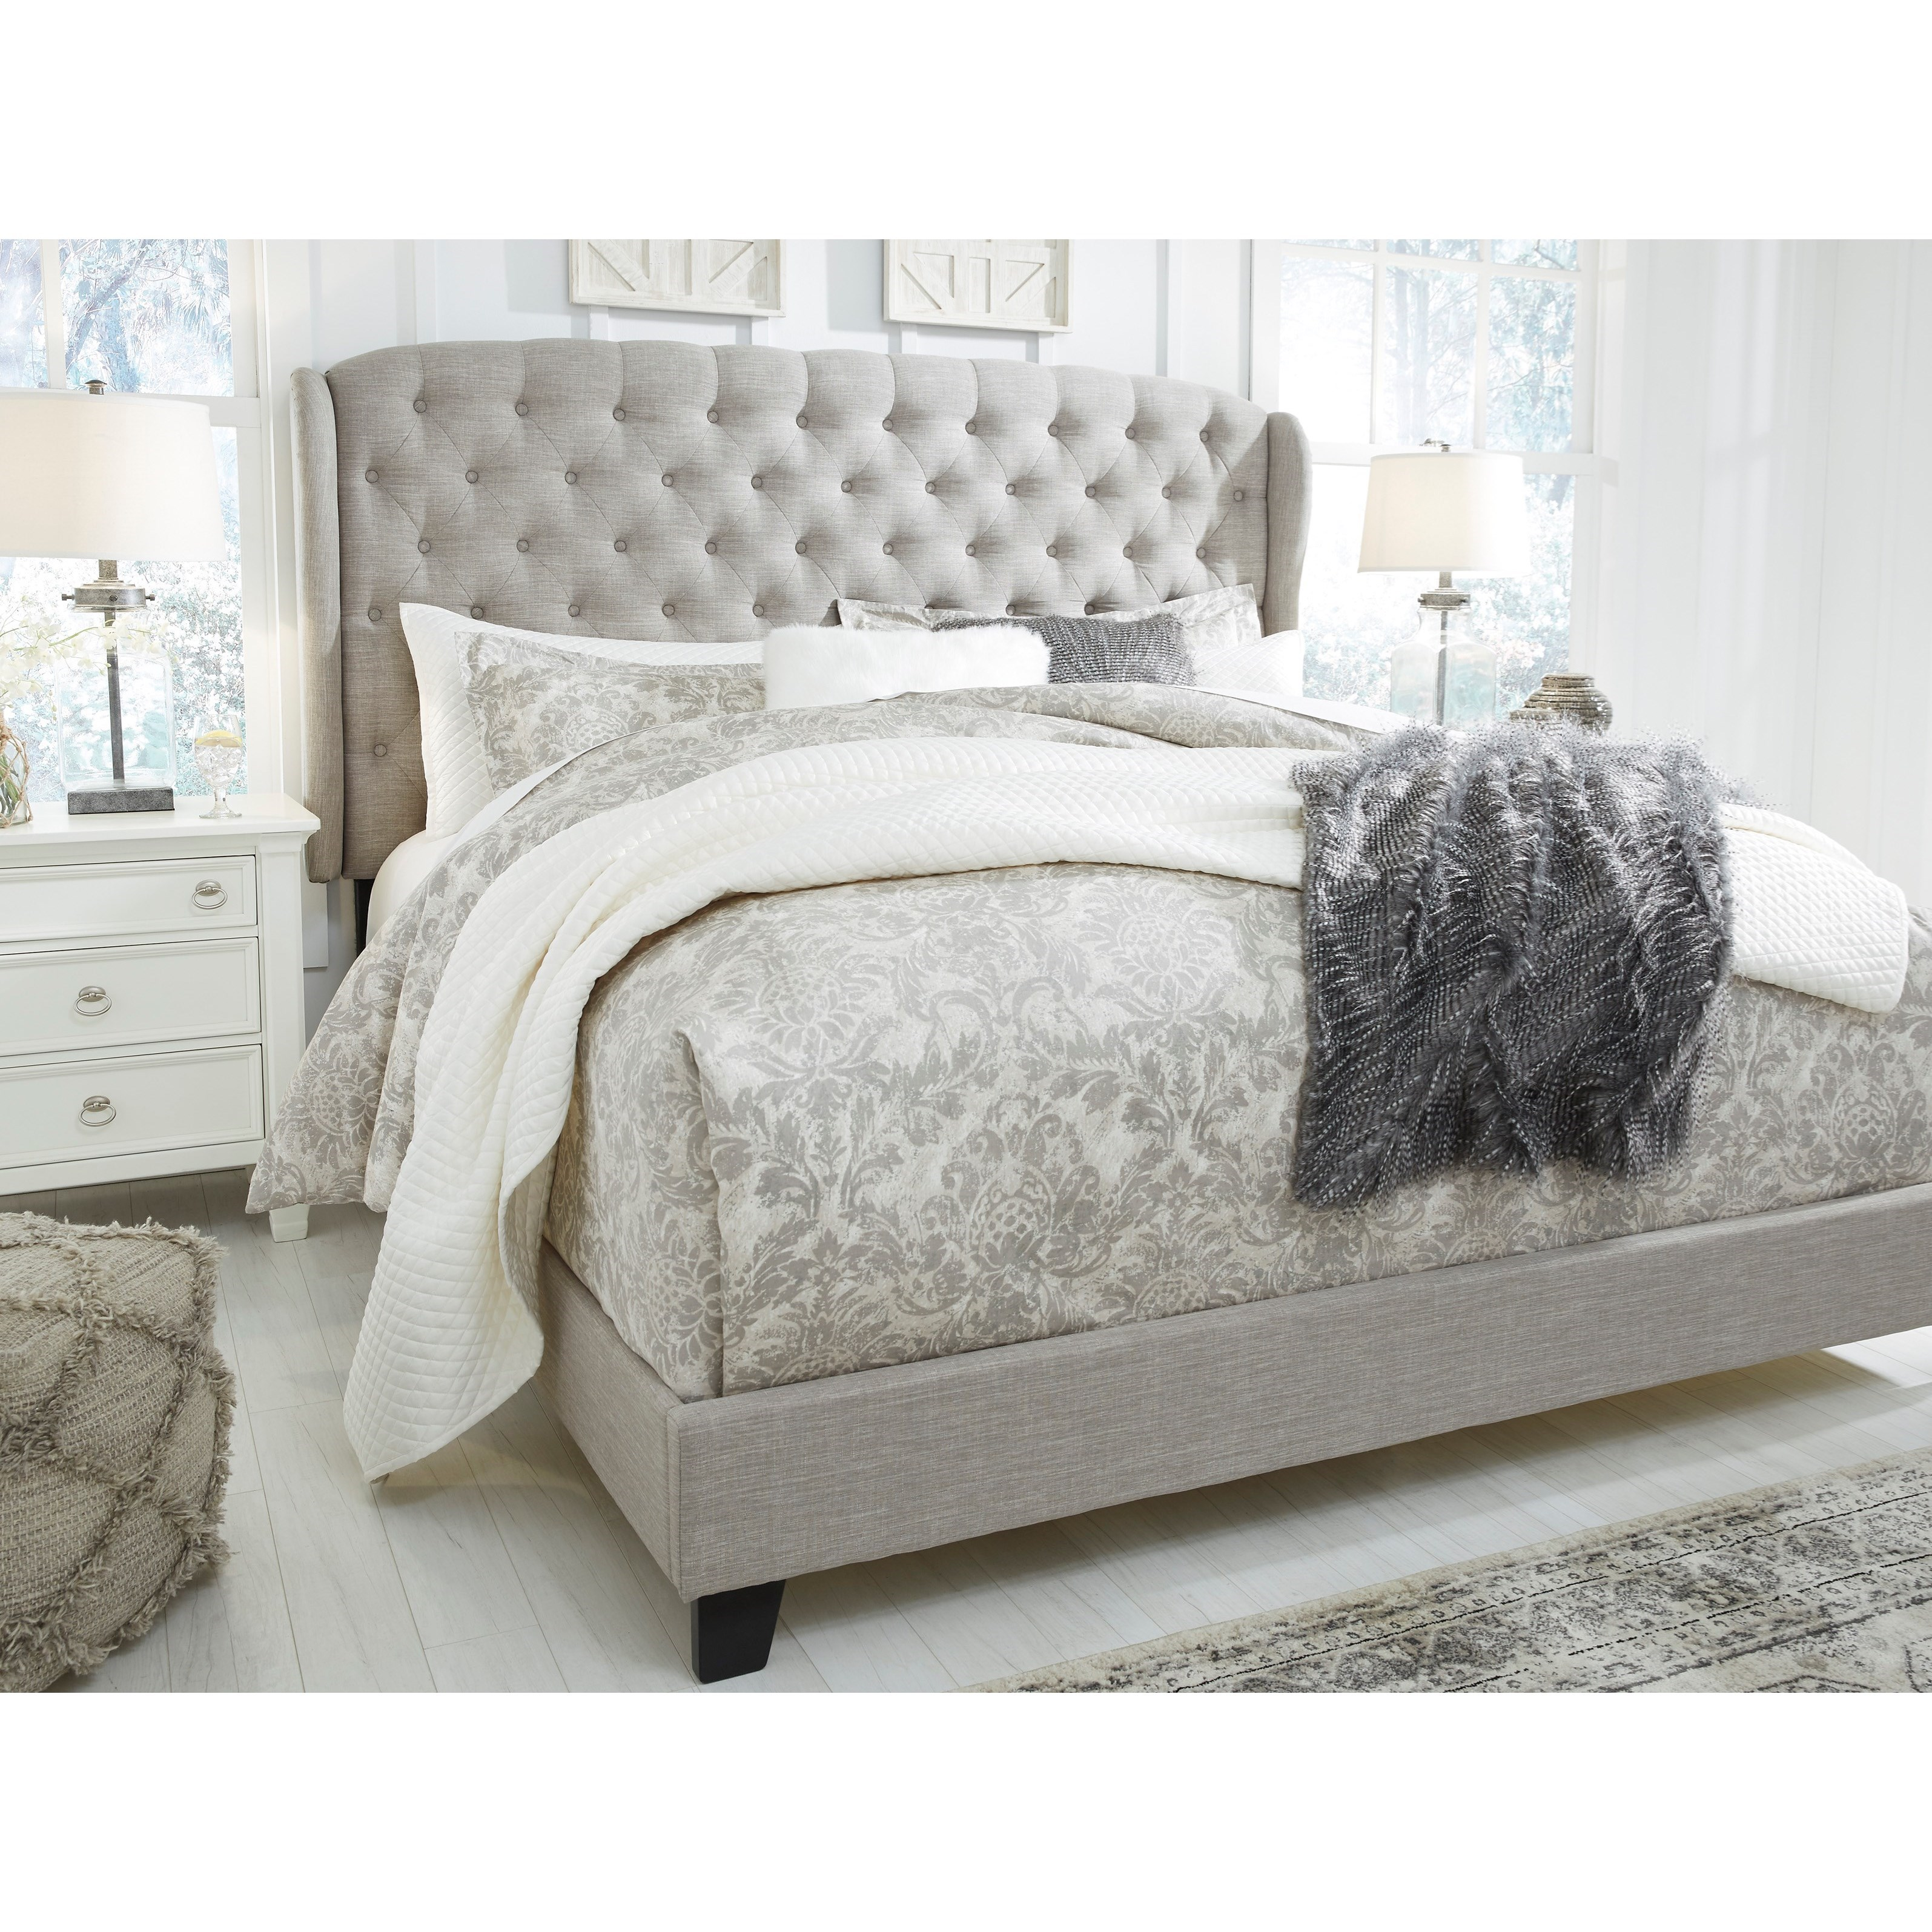 Signature Design By Ashley Jerary Queen Upholstered Bed